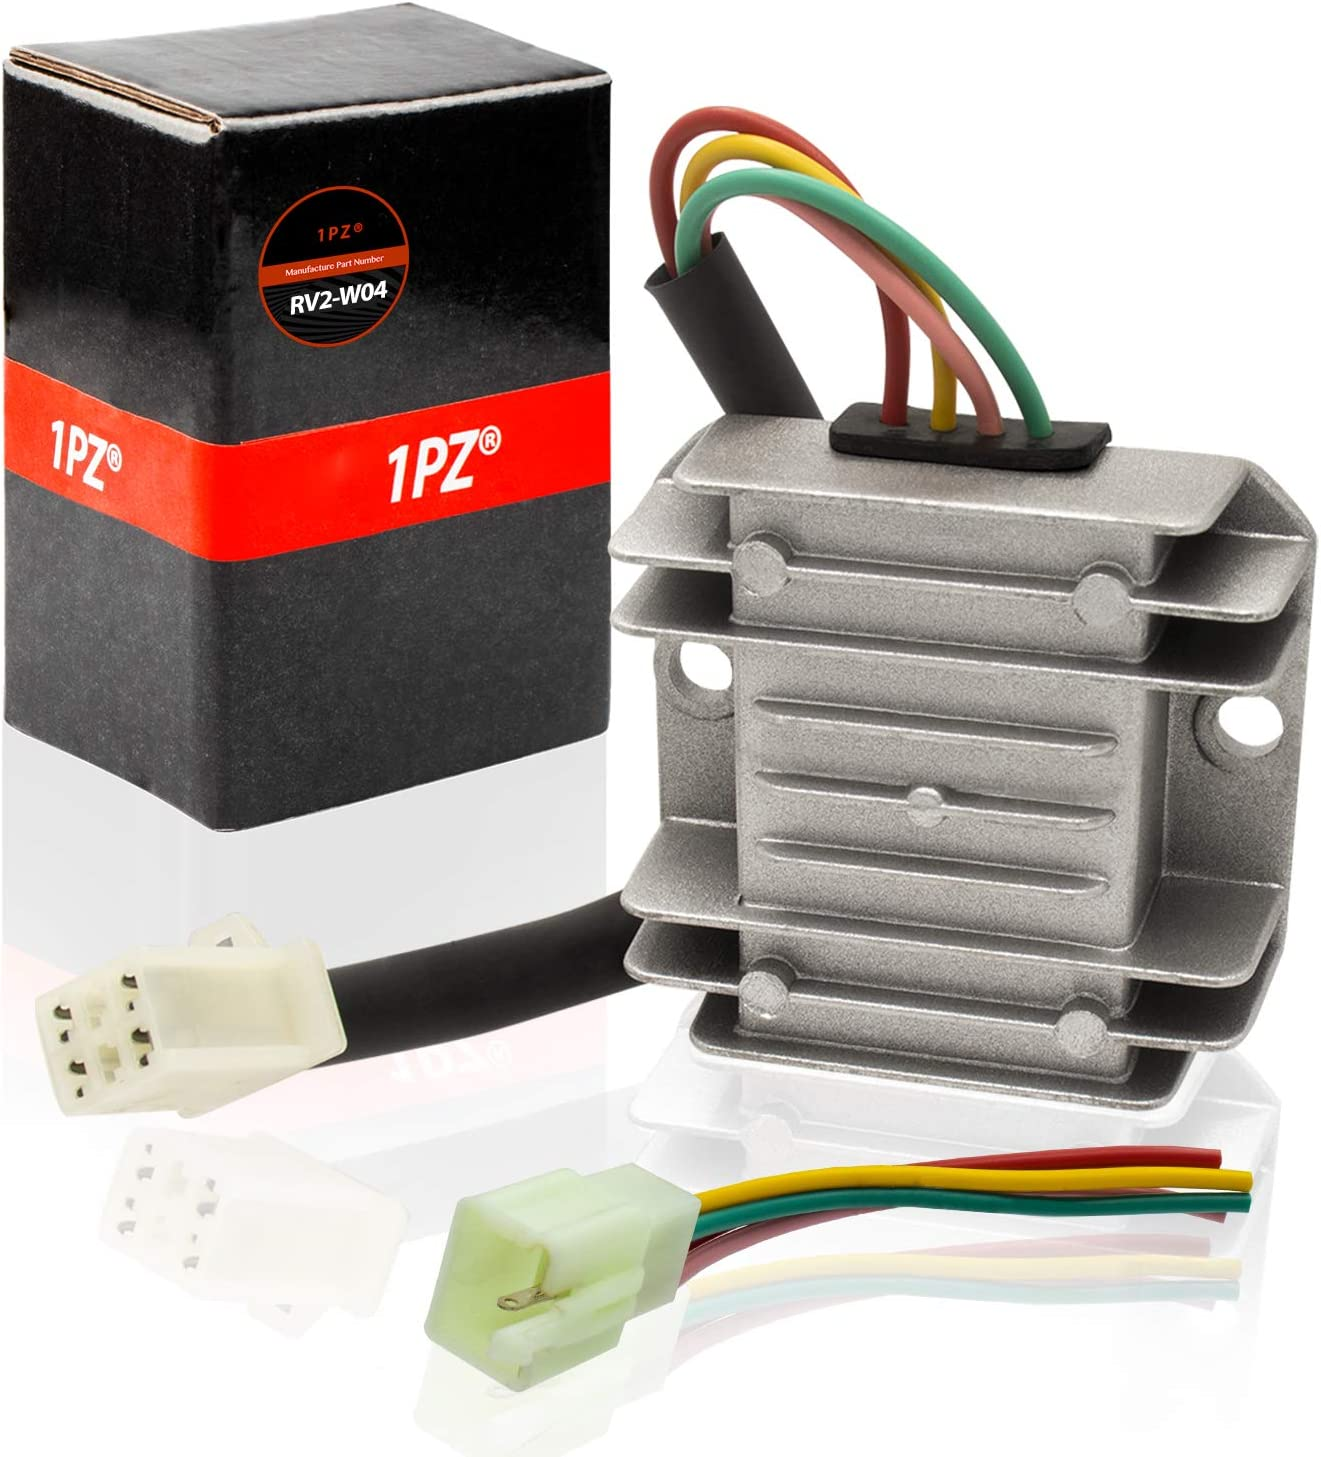 1PZ RV2-W04 4 Wires Voltage Regulator Rectifier for Motorcycle Boat ATV GY6 50 150cc Scooter Moped JCL NST Taotao